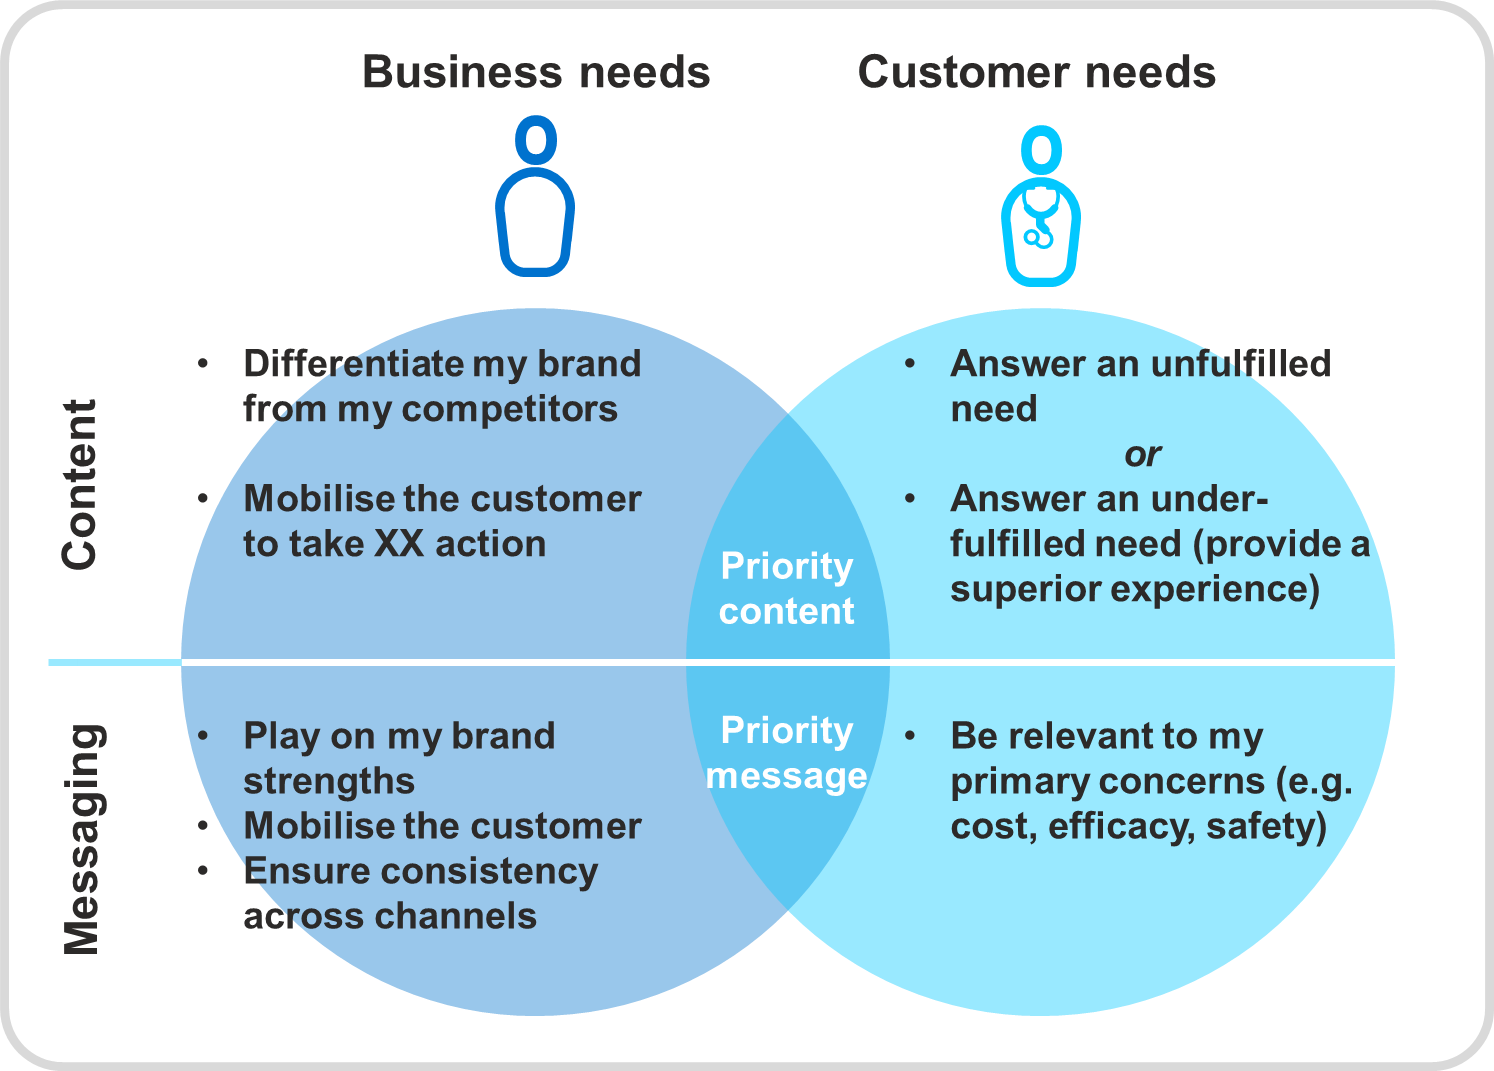 Business needs vs. Customer needs